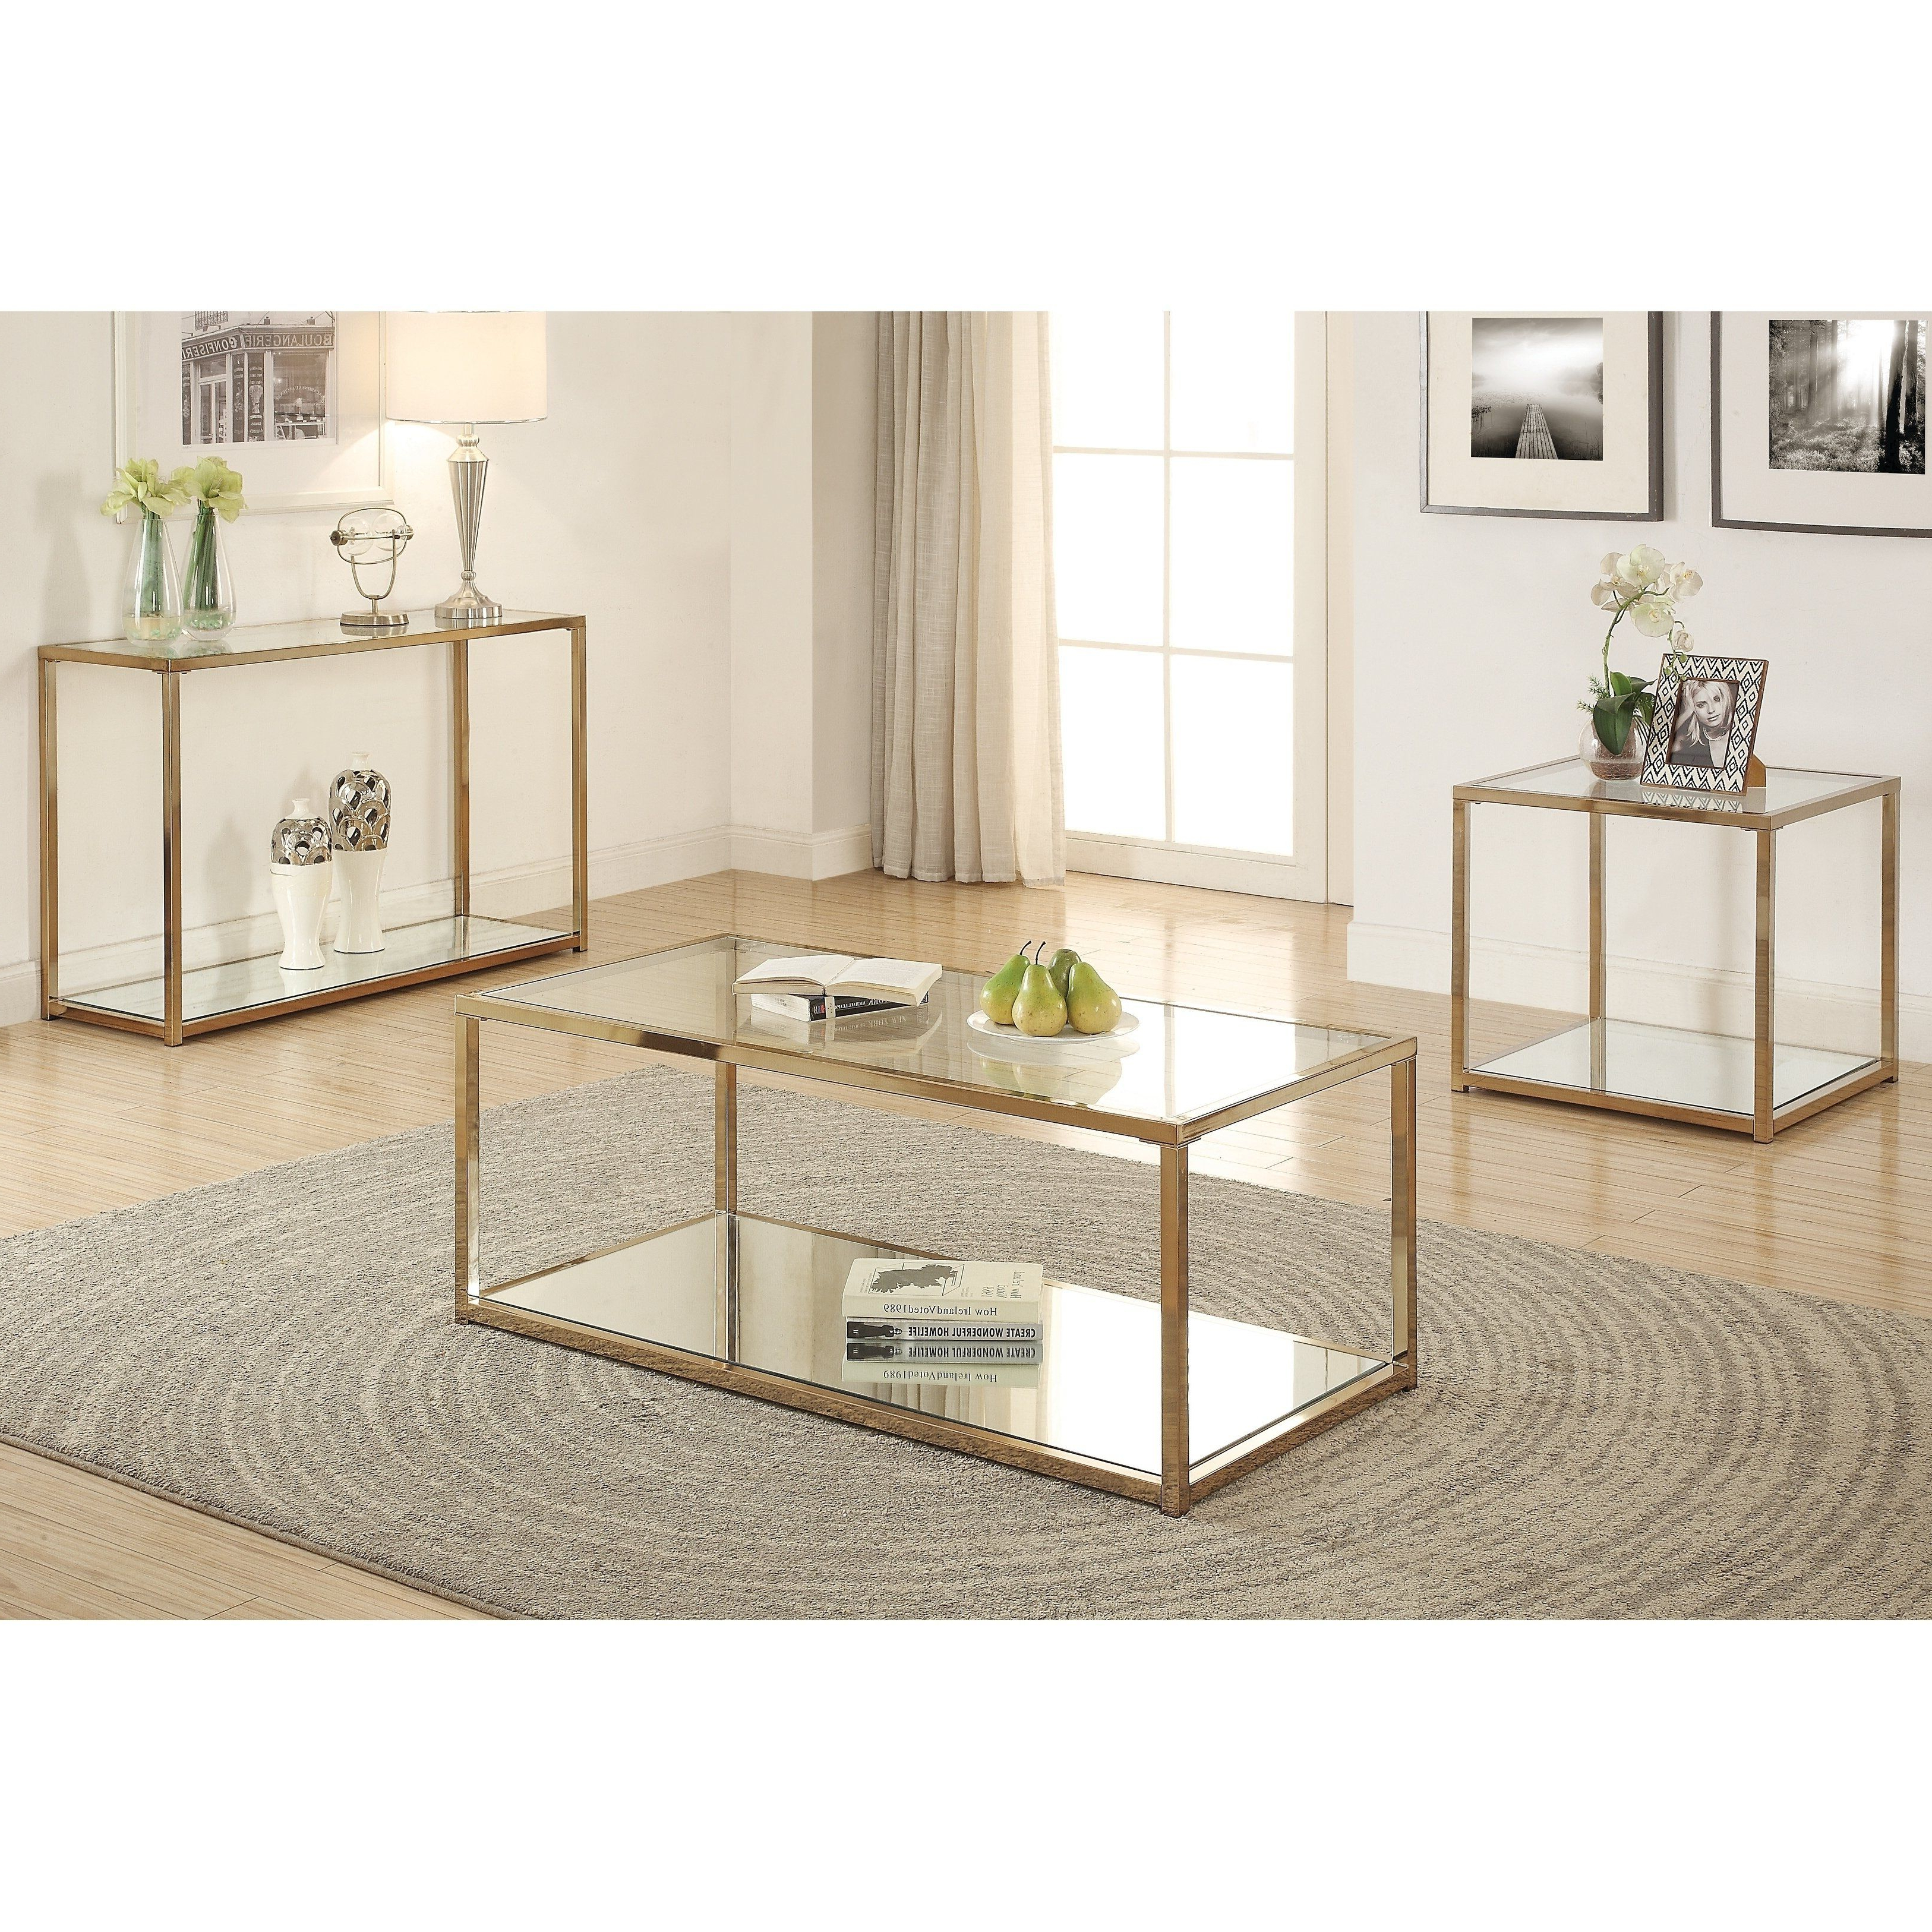 Most Up To Date Contemporary Chrome Glass Top And Mirror Shelf Coffee Tables Intended For Silver Orchid Hartau Modern Chocolate Chrome Finish Coffee (View 12 of 20)